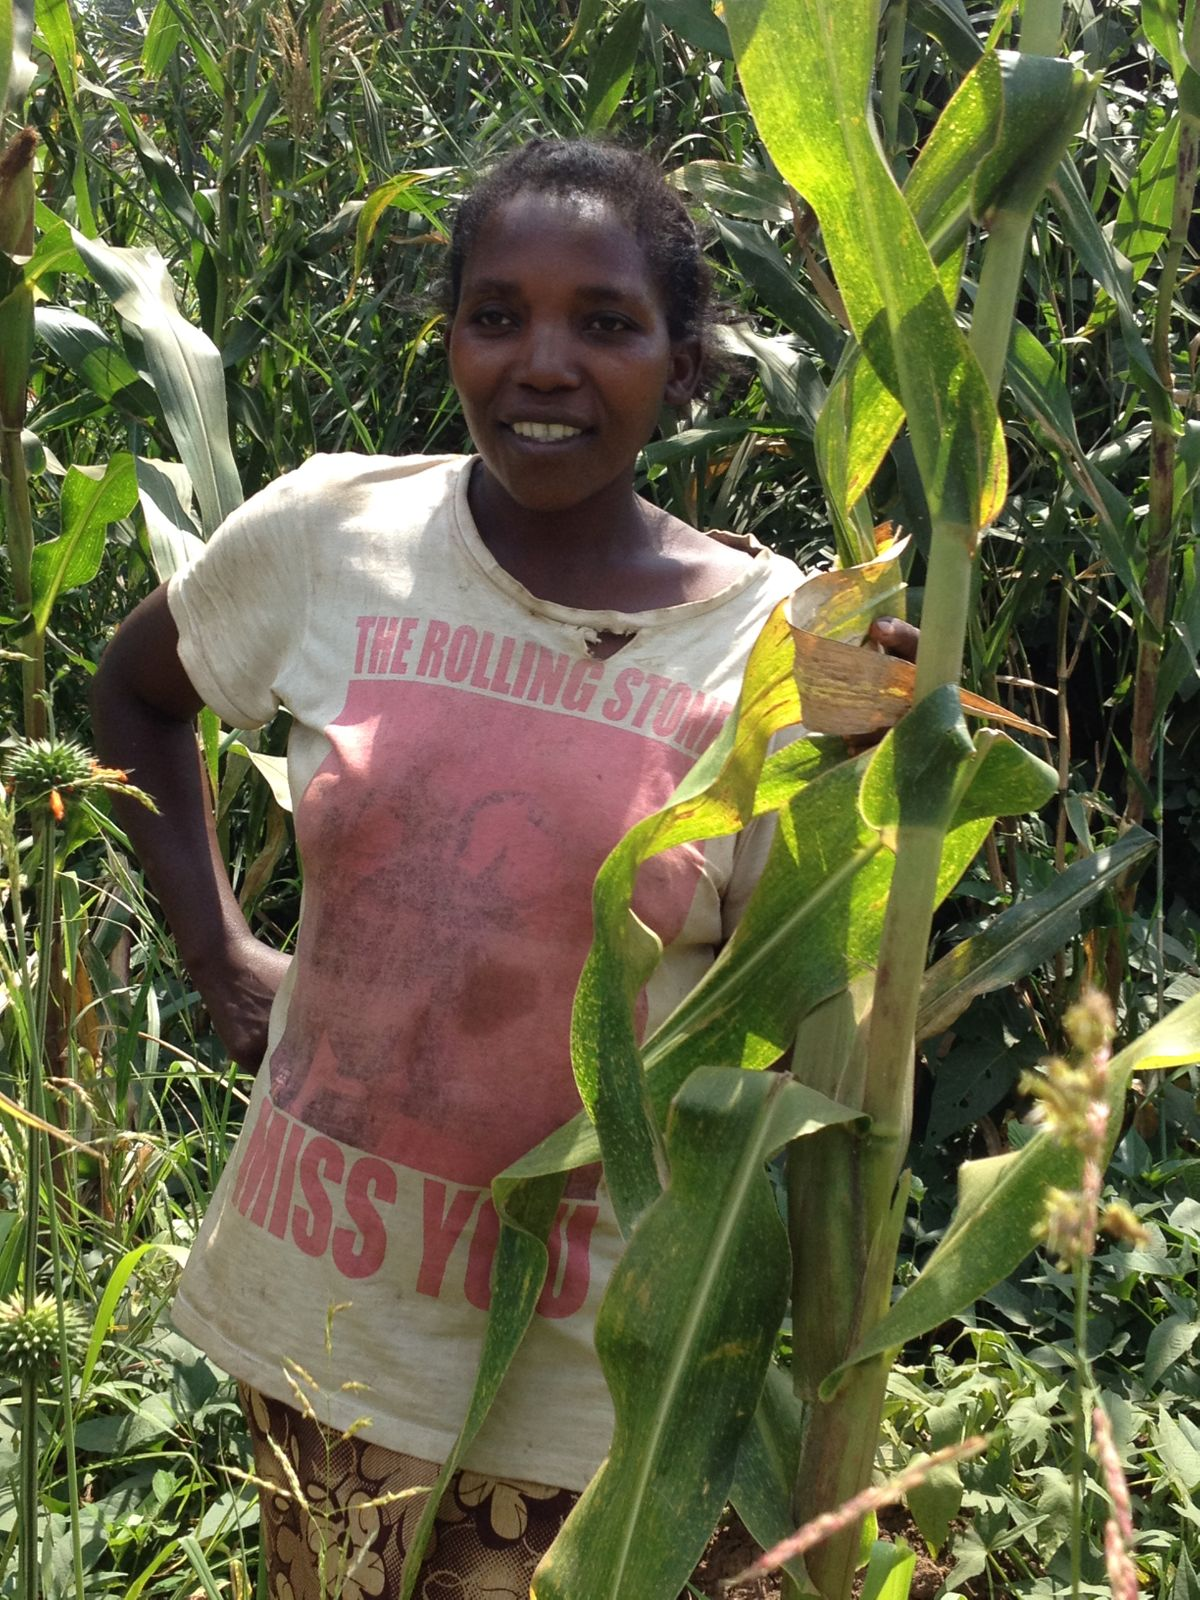 Rosette and her agricultural project to sustain her family